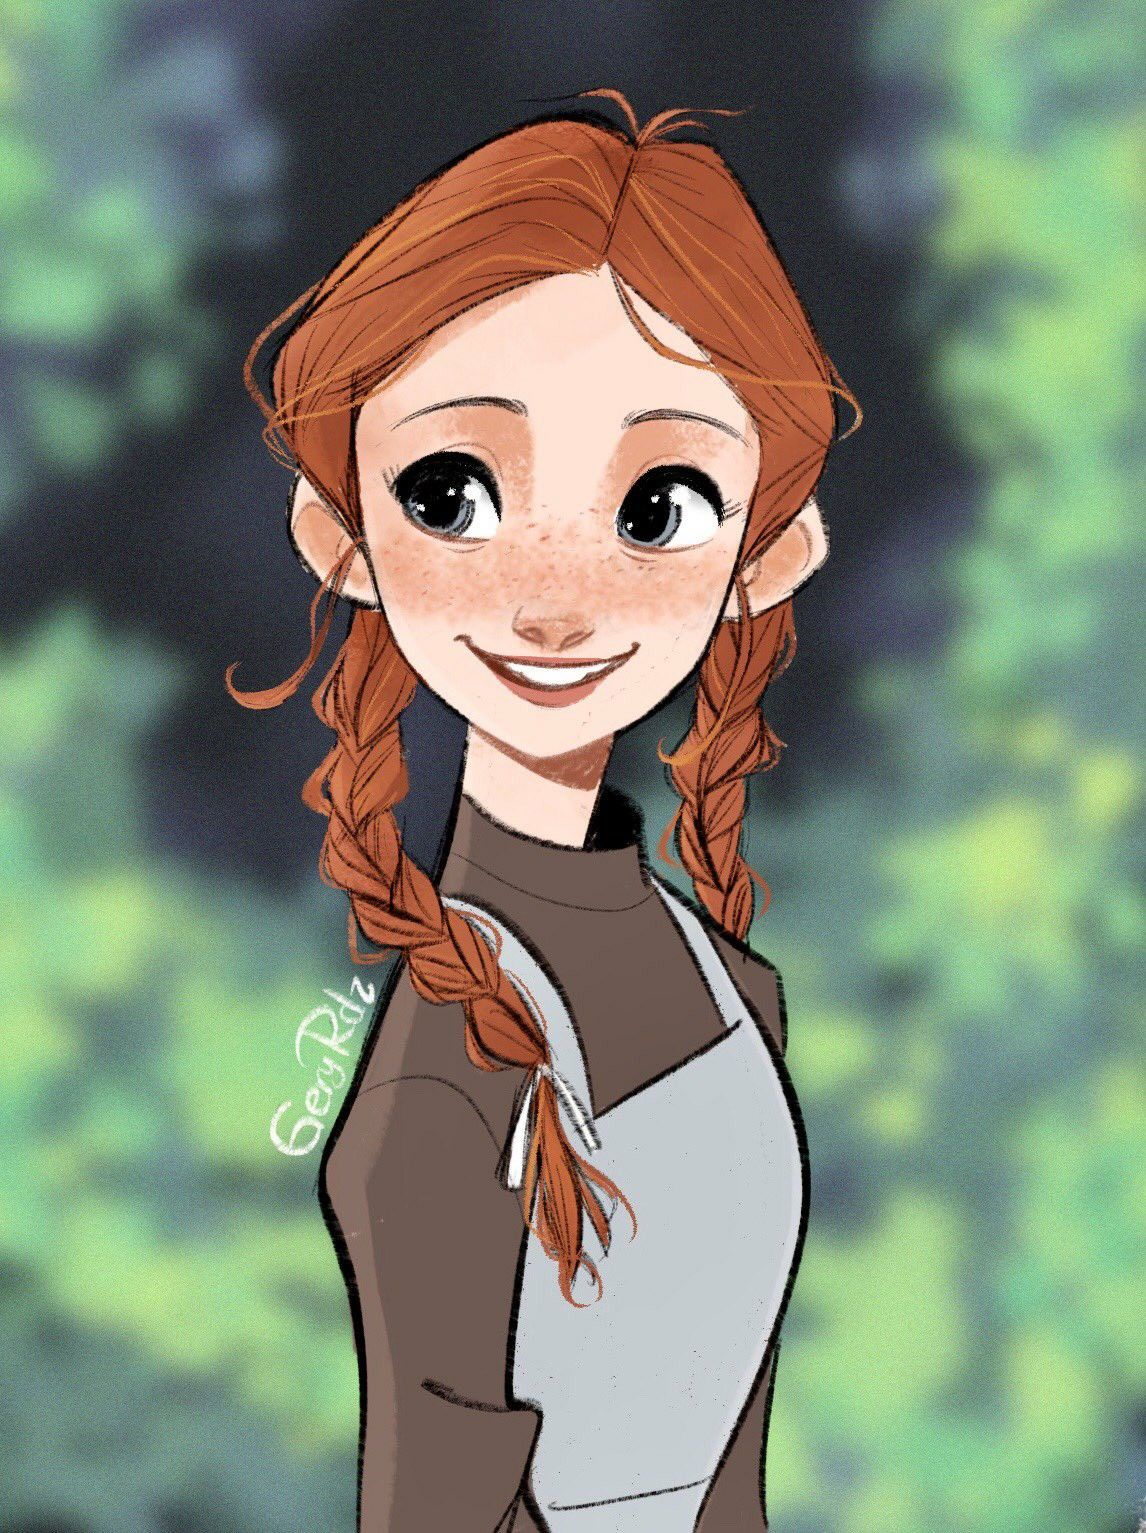 Anne From Anne Of Green Gables In 2020 Character Art Cute